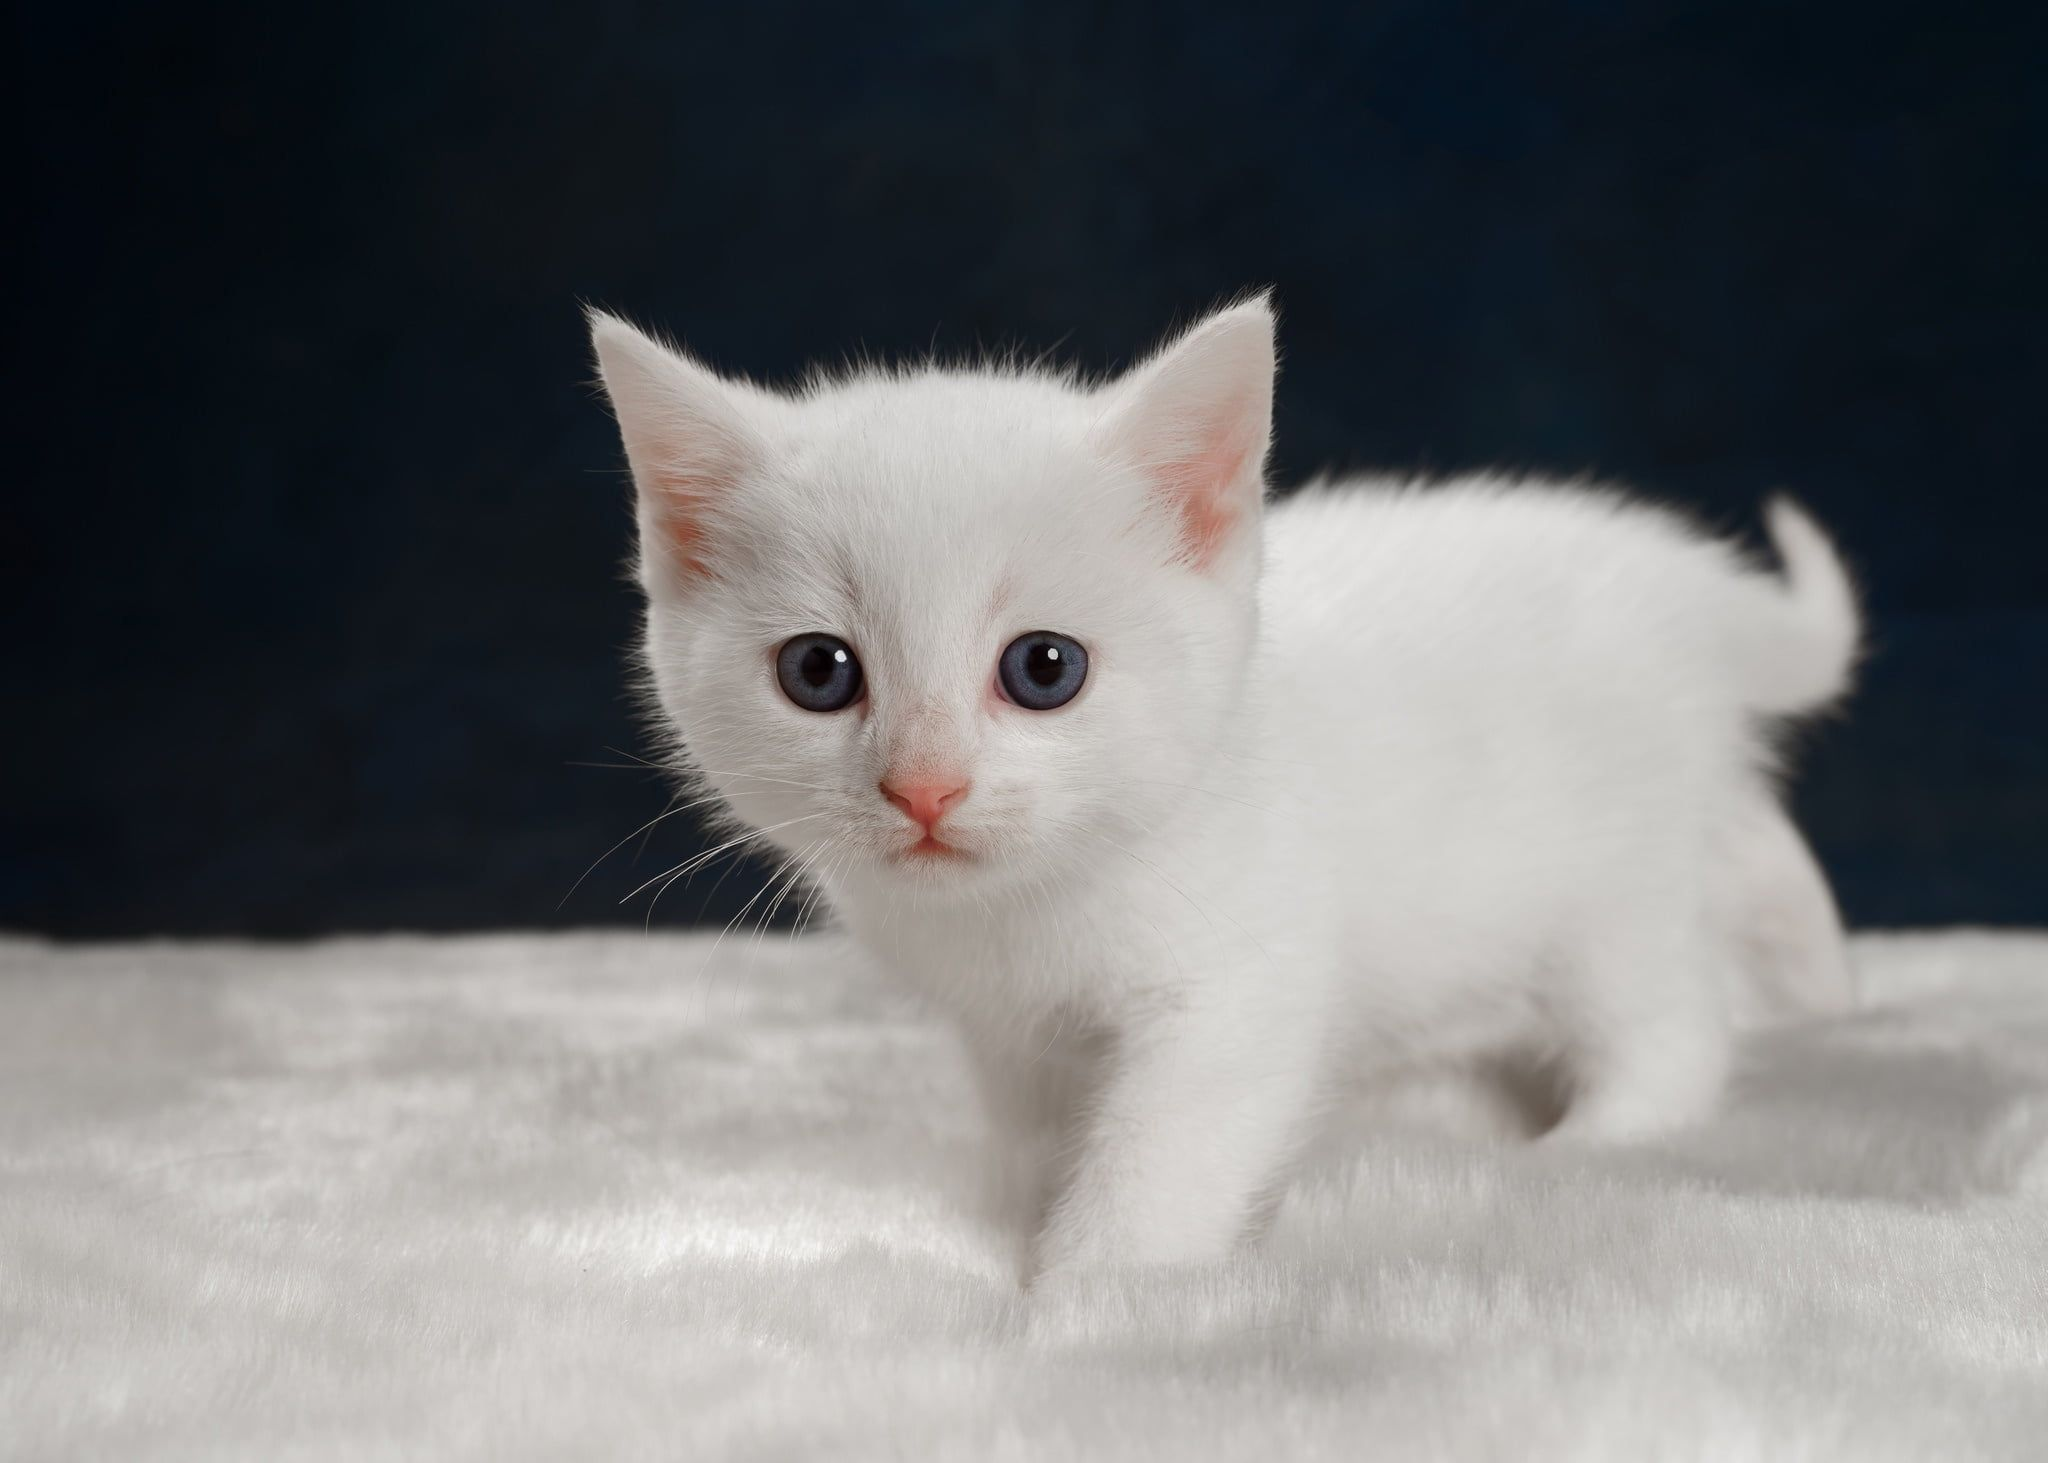 Which White Kittens Are Best To Keep As Pets Pure White Kittens In 2020 Kittens And Puppies White Kittens Kittens